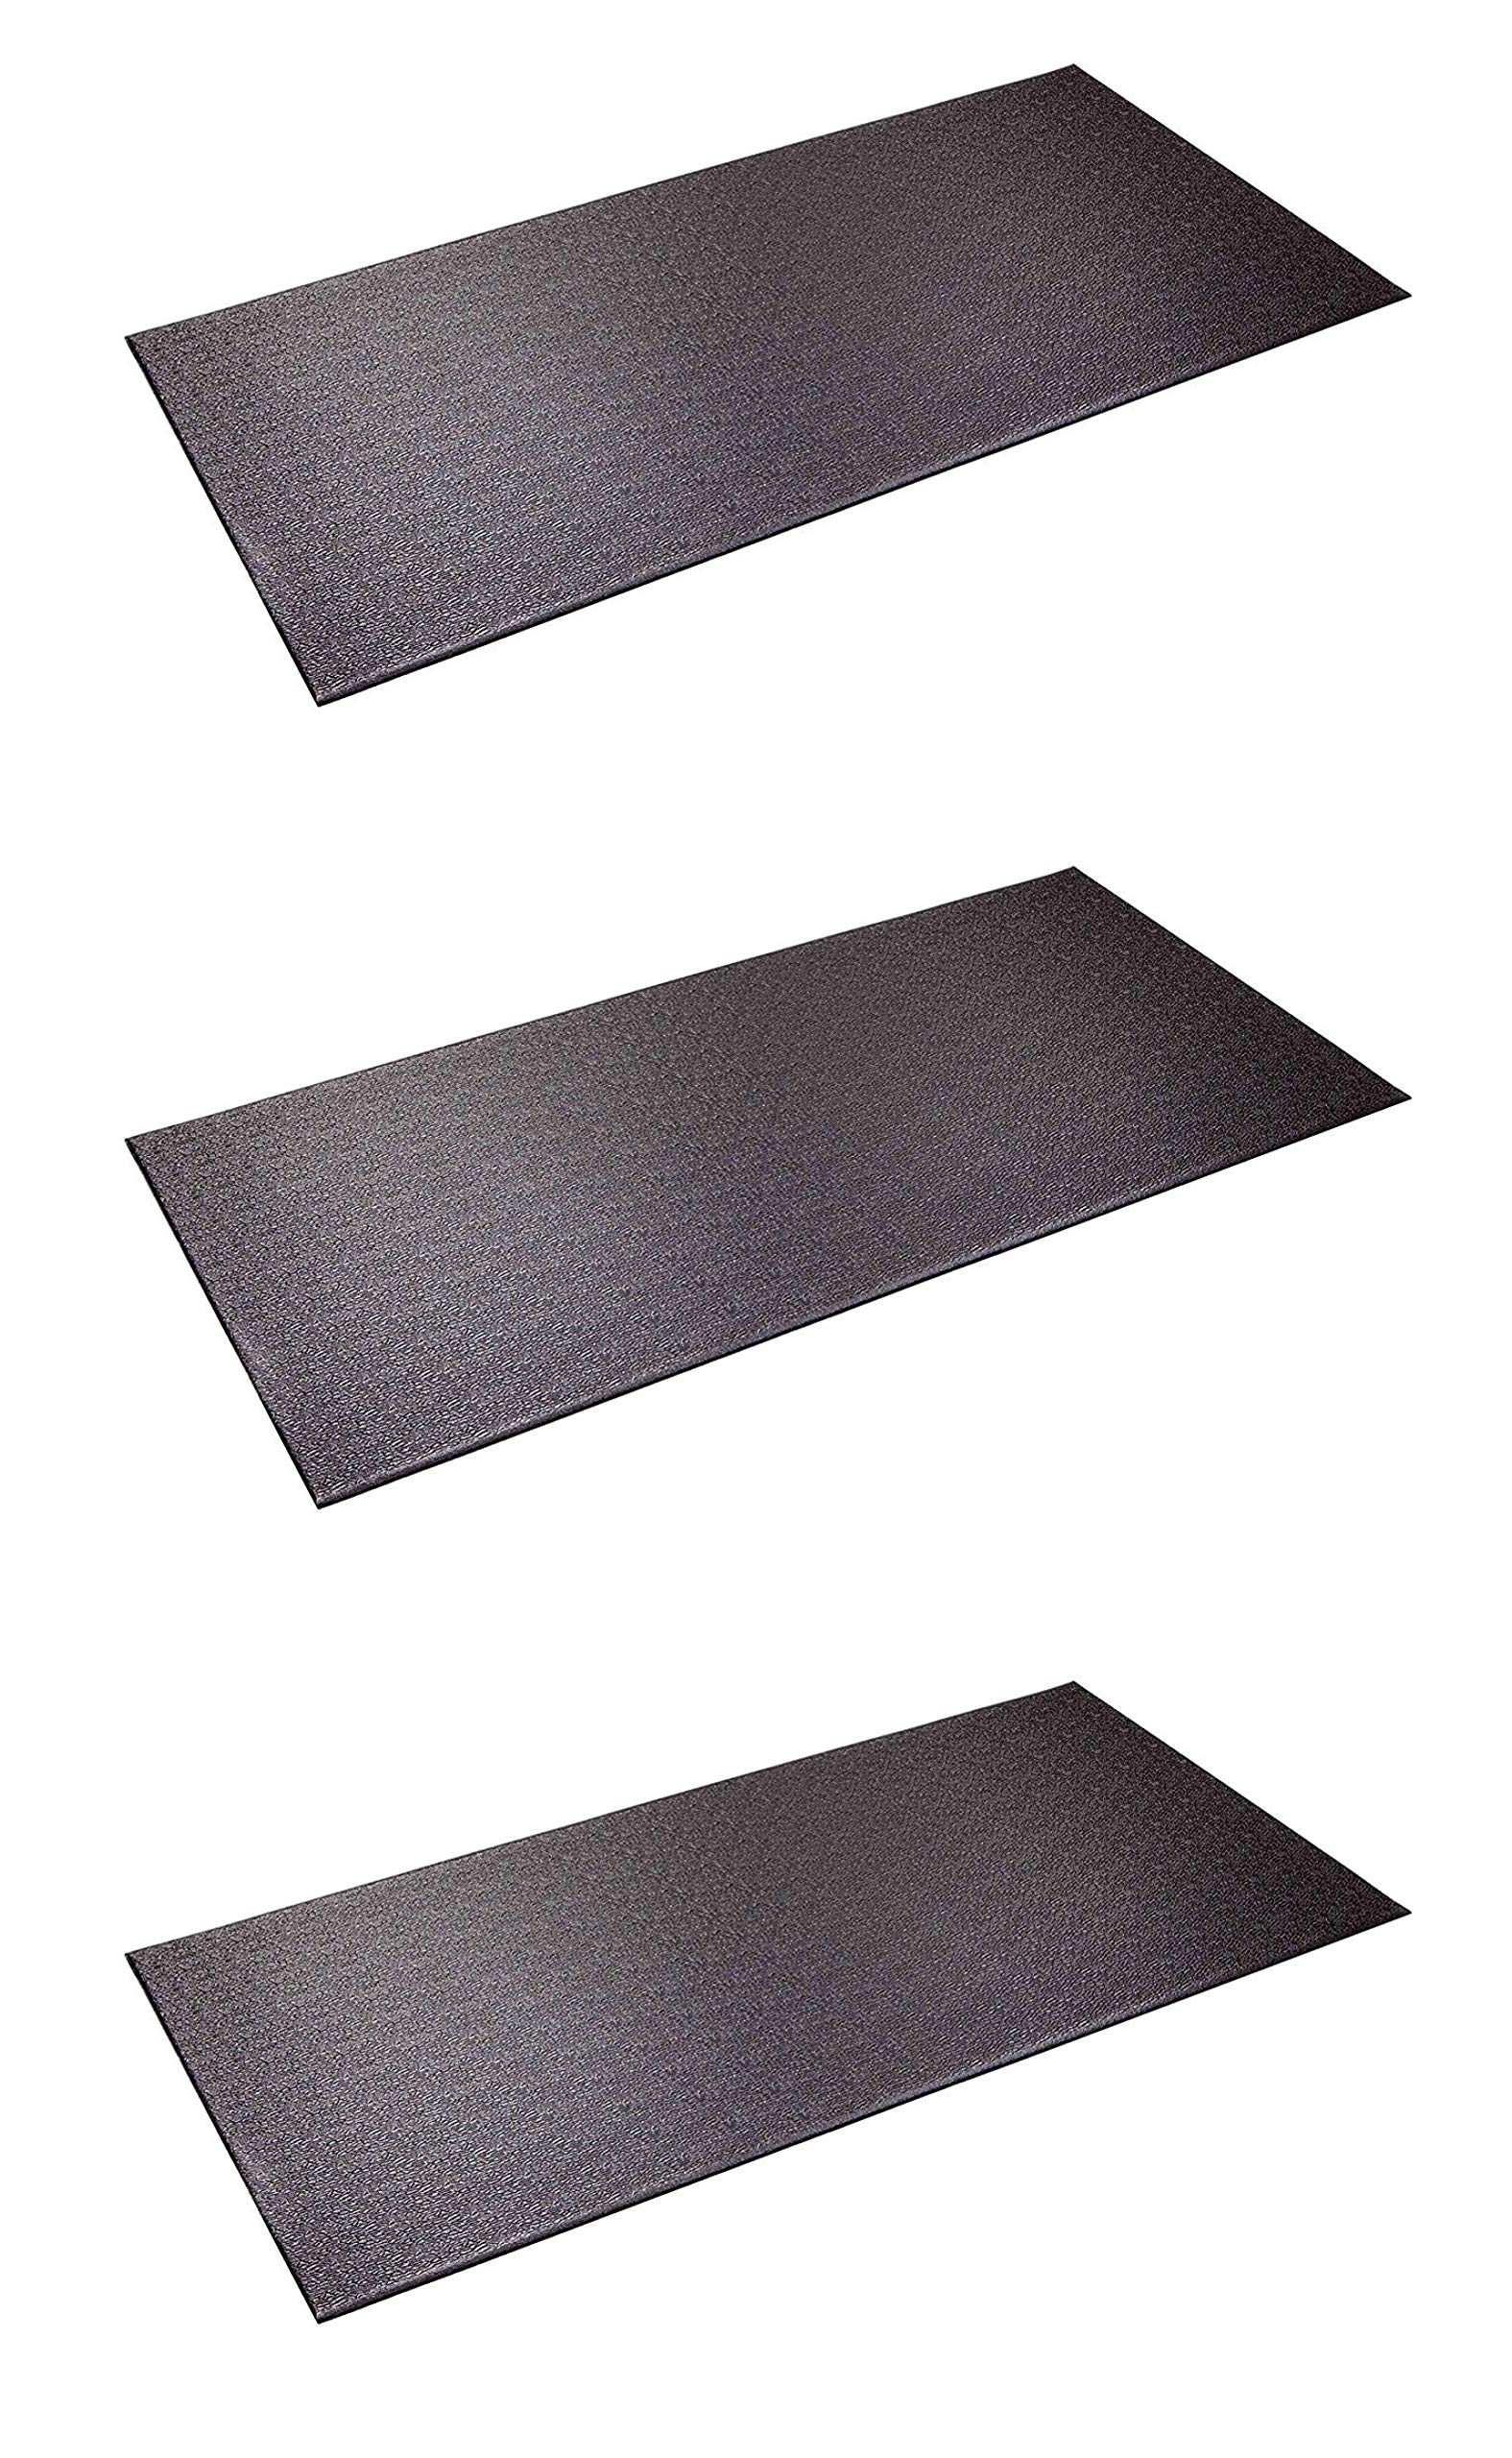 SuperMats Heavy Duty Equipment Mat 13GS Made in U.S.A. for Indoor Cycles Recumbent Bikes Upright Exercise Bikes and Steppers (2.5 Feet x 5 Feet) (30-Inch x 60-Inch) (Three Pack) by SuperMats